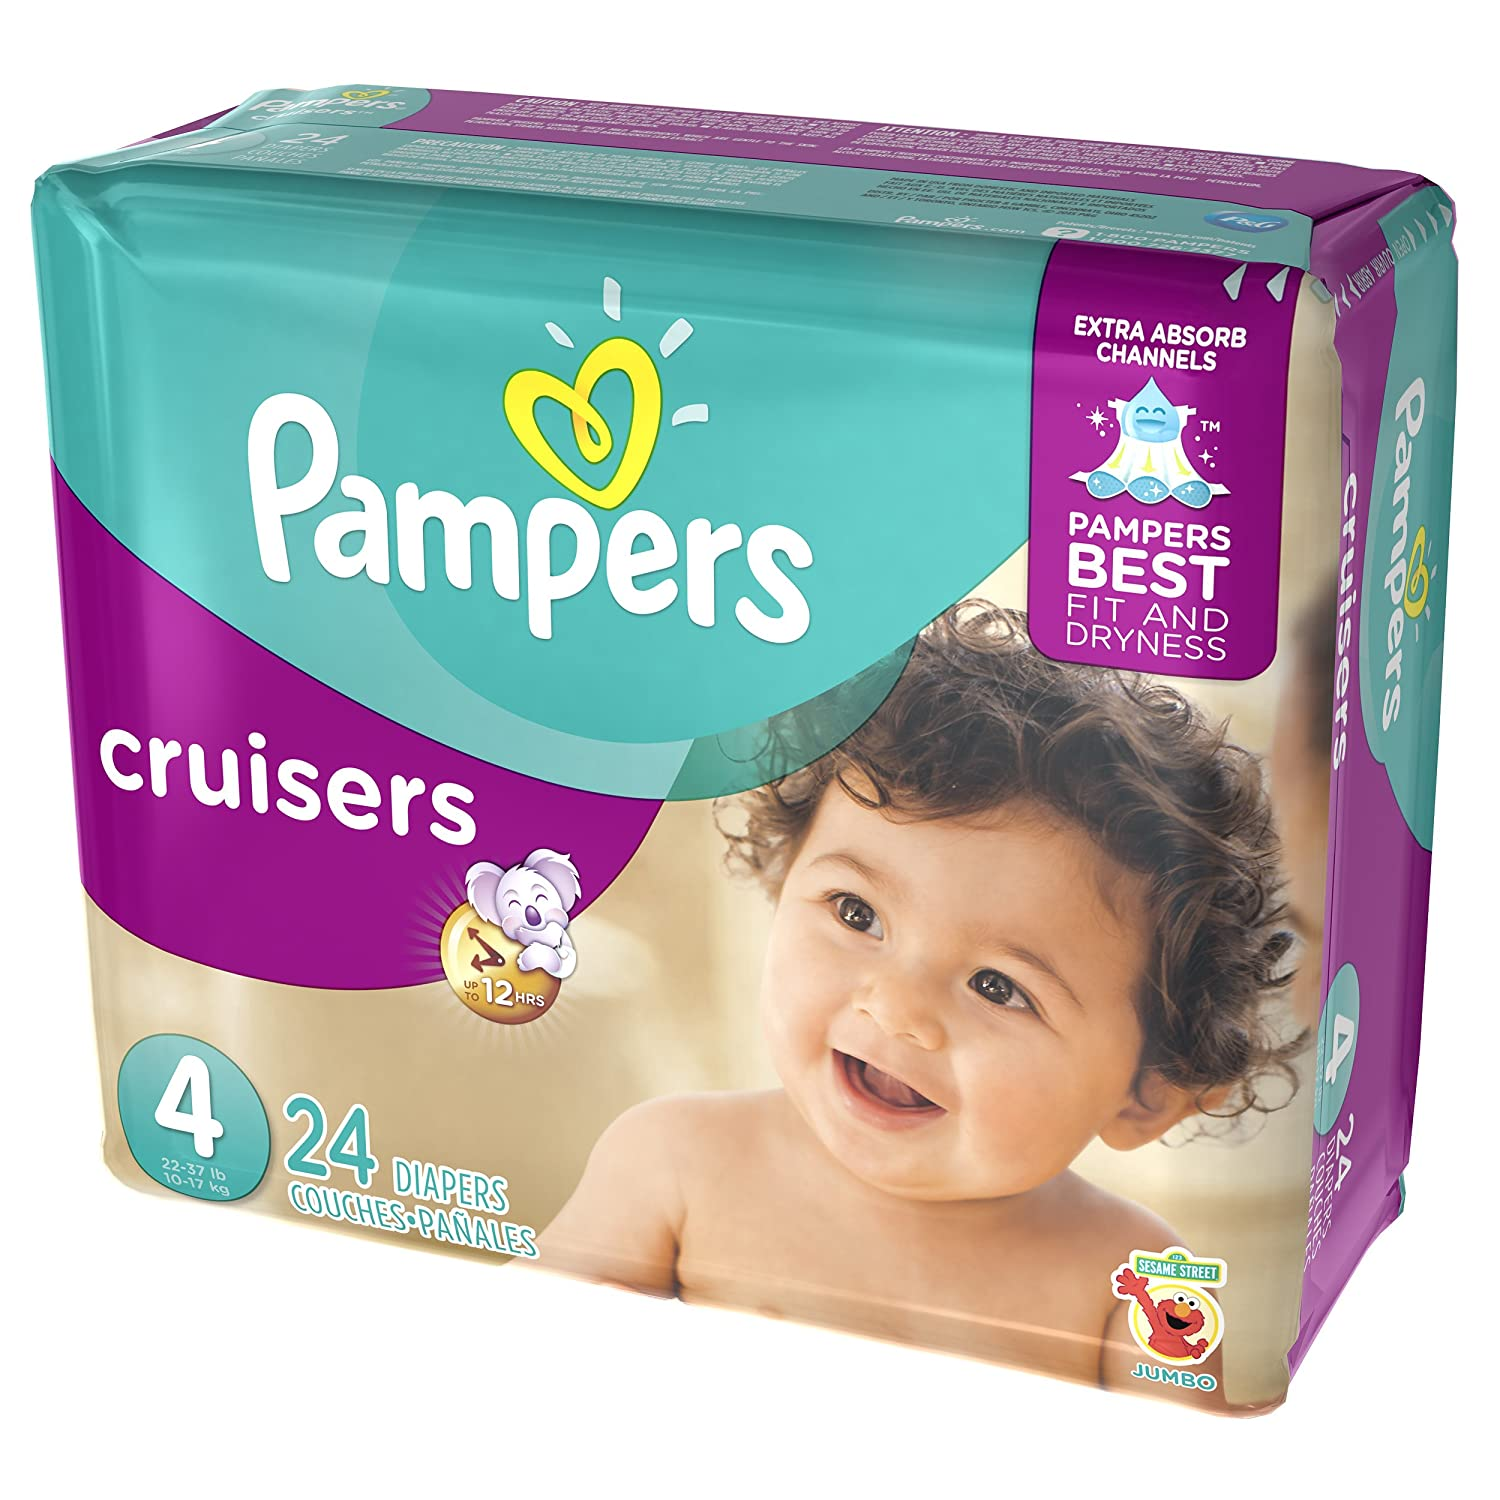 Amazon.com: Pampers Cruisers Disposable Diapers Size 4, 24 Count, JUMBO: Health & Personal Care